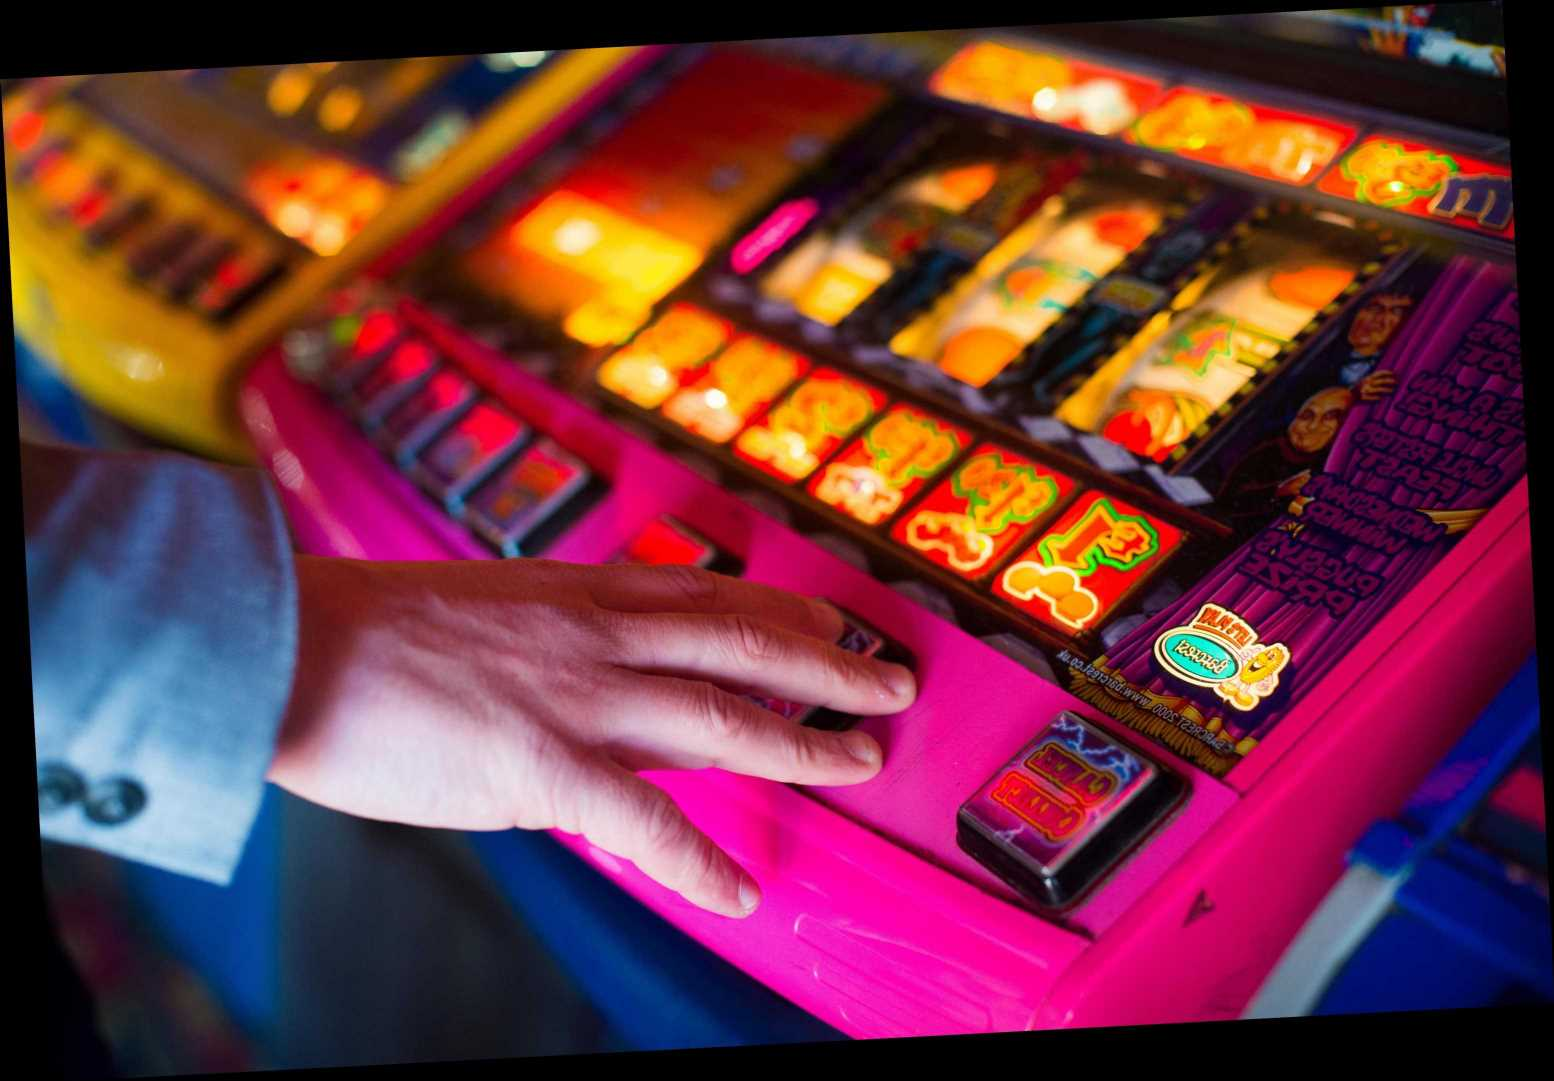 Dad's gambling addiction is ruining his relationship with mum and I